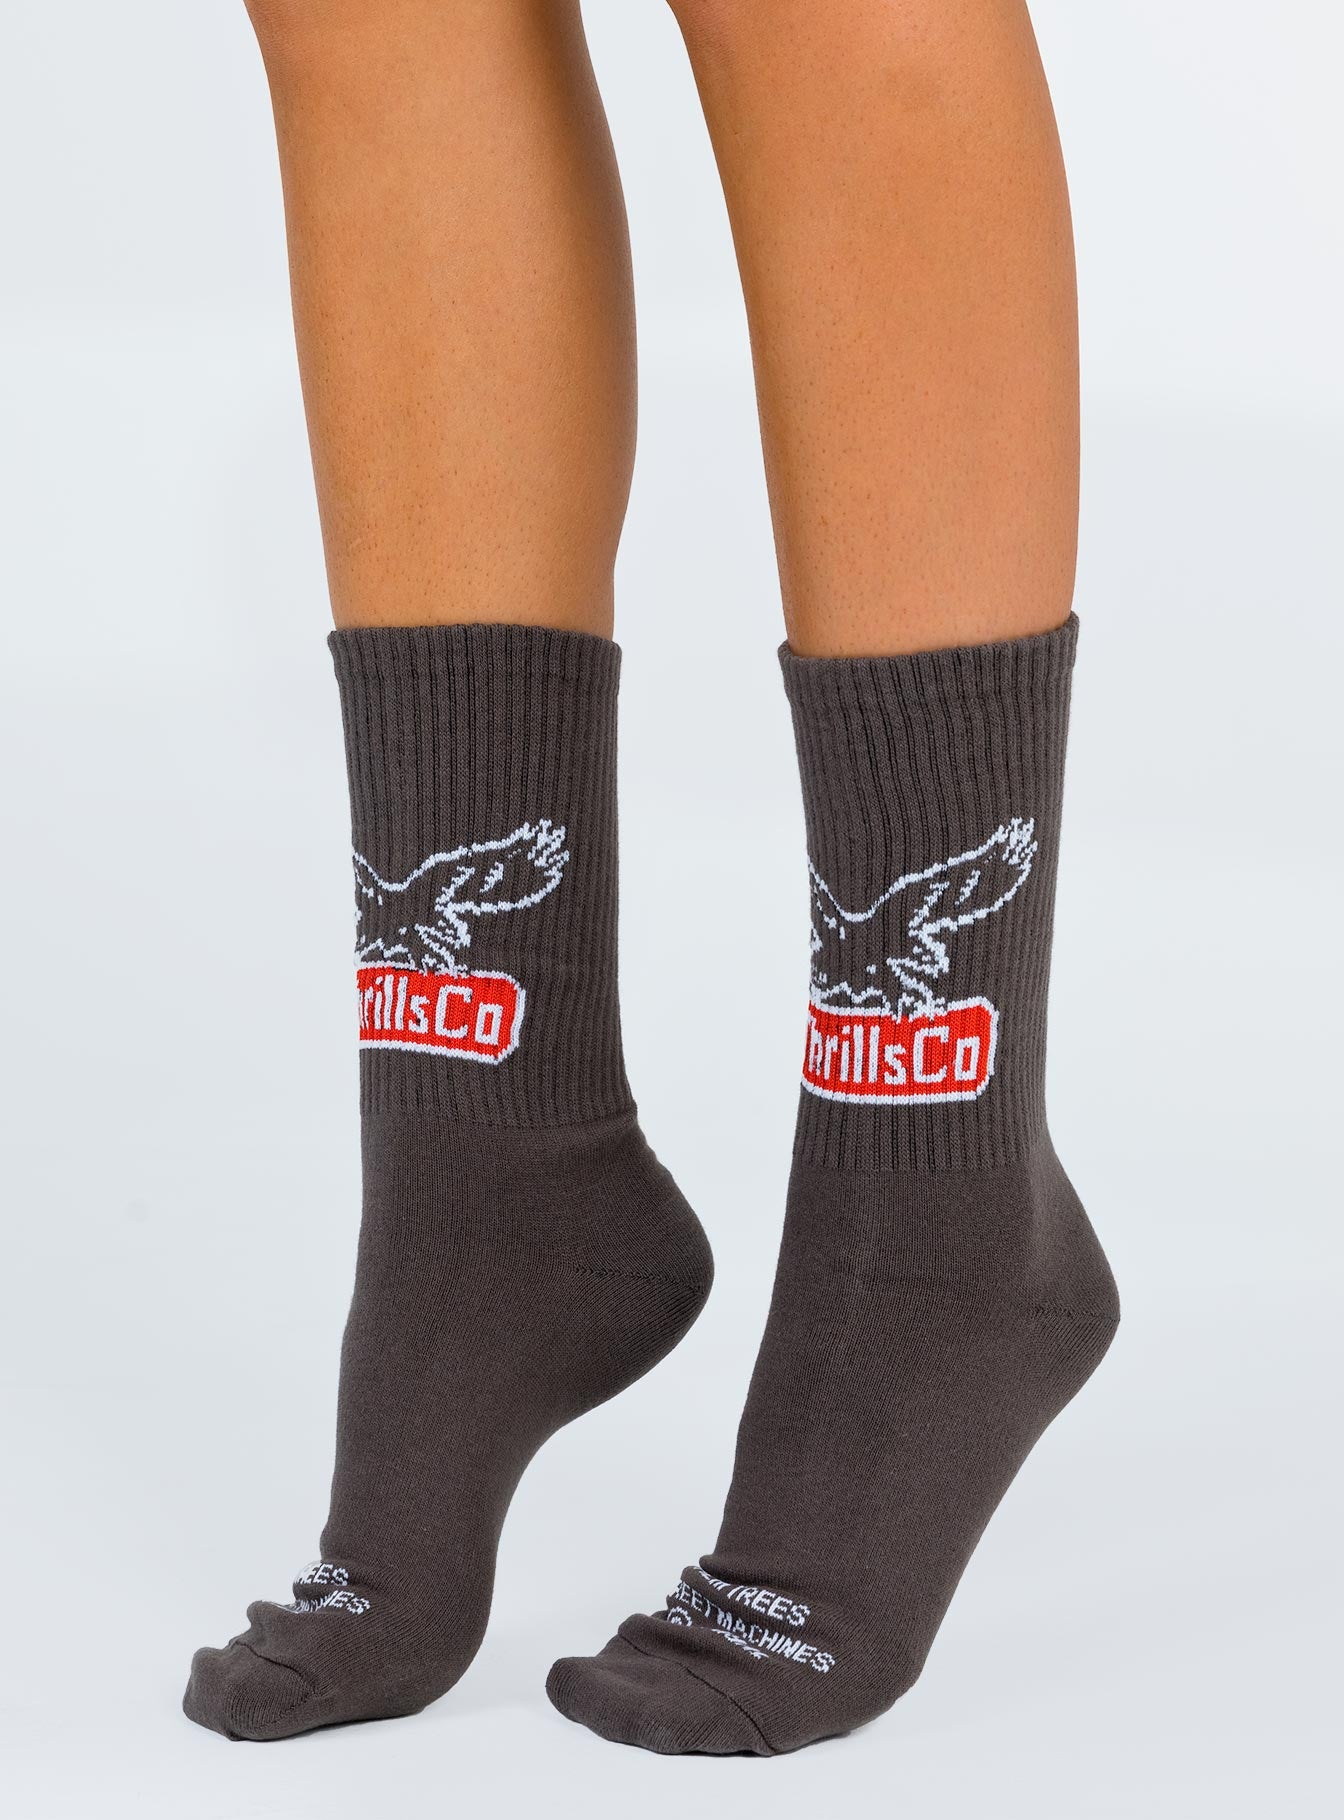 Thrills Landed Eagle Sock Merch Black